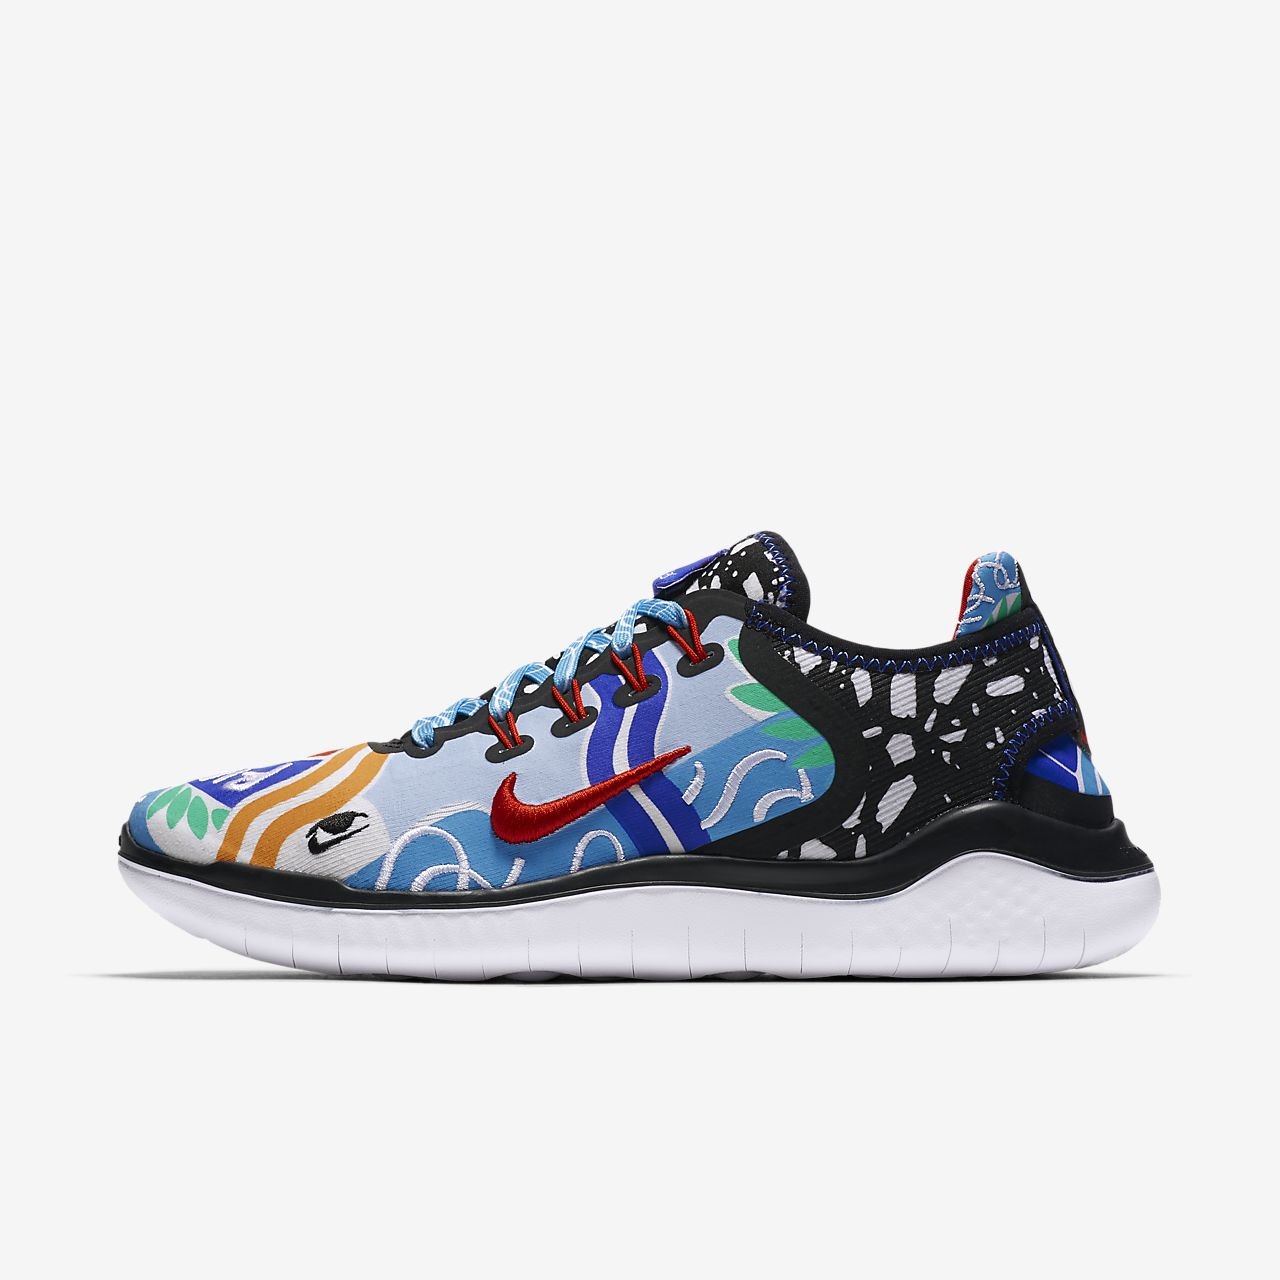 ... Nike x Kelly Anna Free RN 2018 T-Shirt for Your Feet Women's Running  Shoe